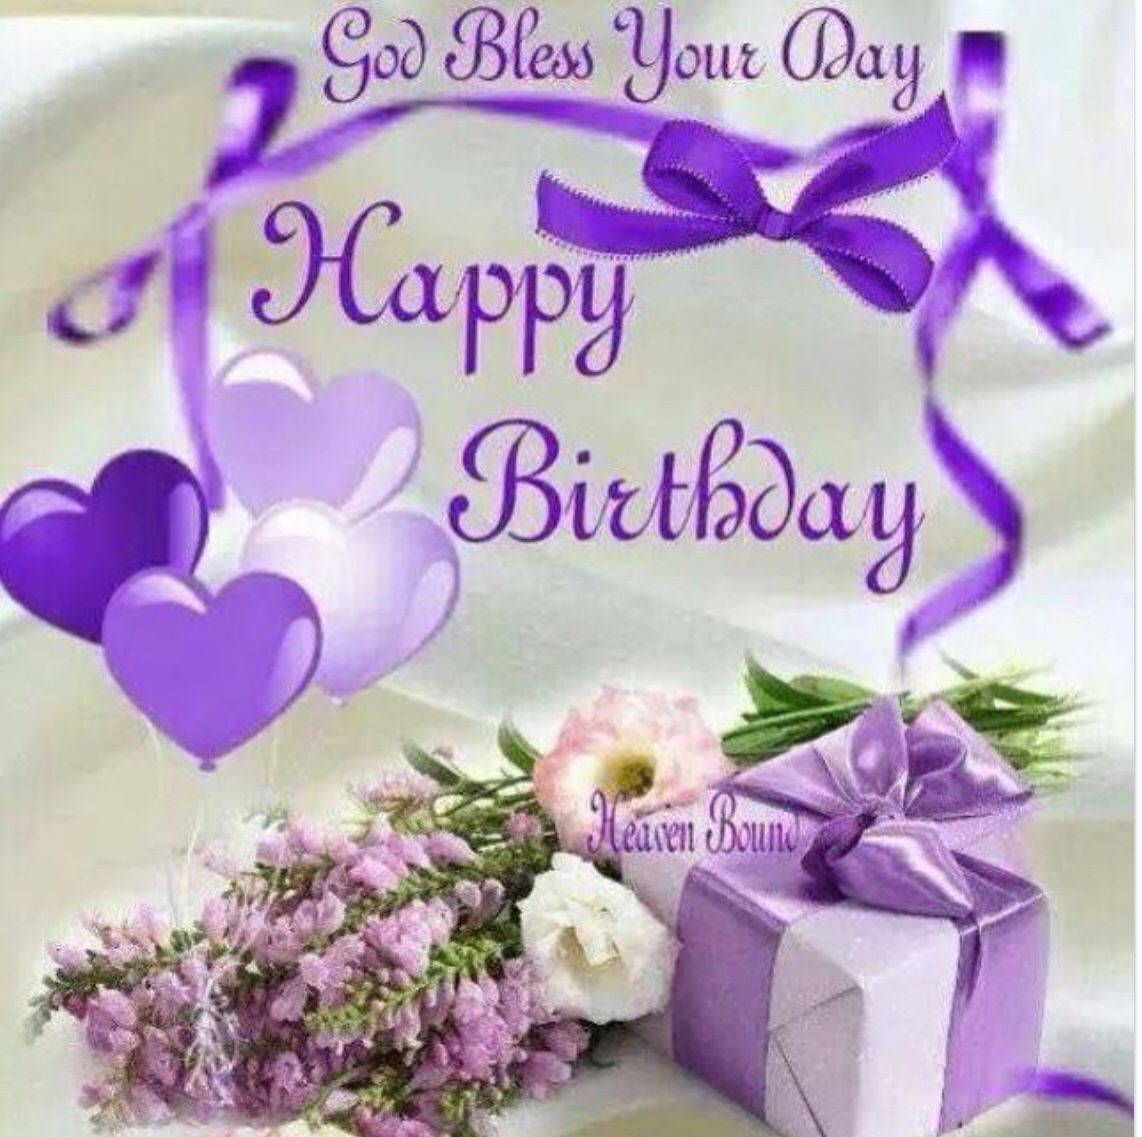 Pin by karla taylor on birthday wishes pinterest happy birthday quotes birthday stuff card birthday happy birthday greetings friends facebook birthday wishes purple hearts happy anniversary purple happy kristyandbryce Choice Image